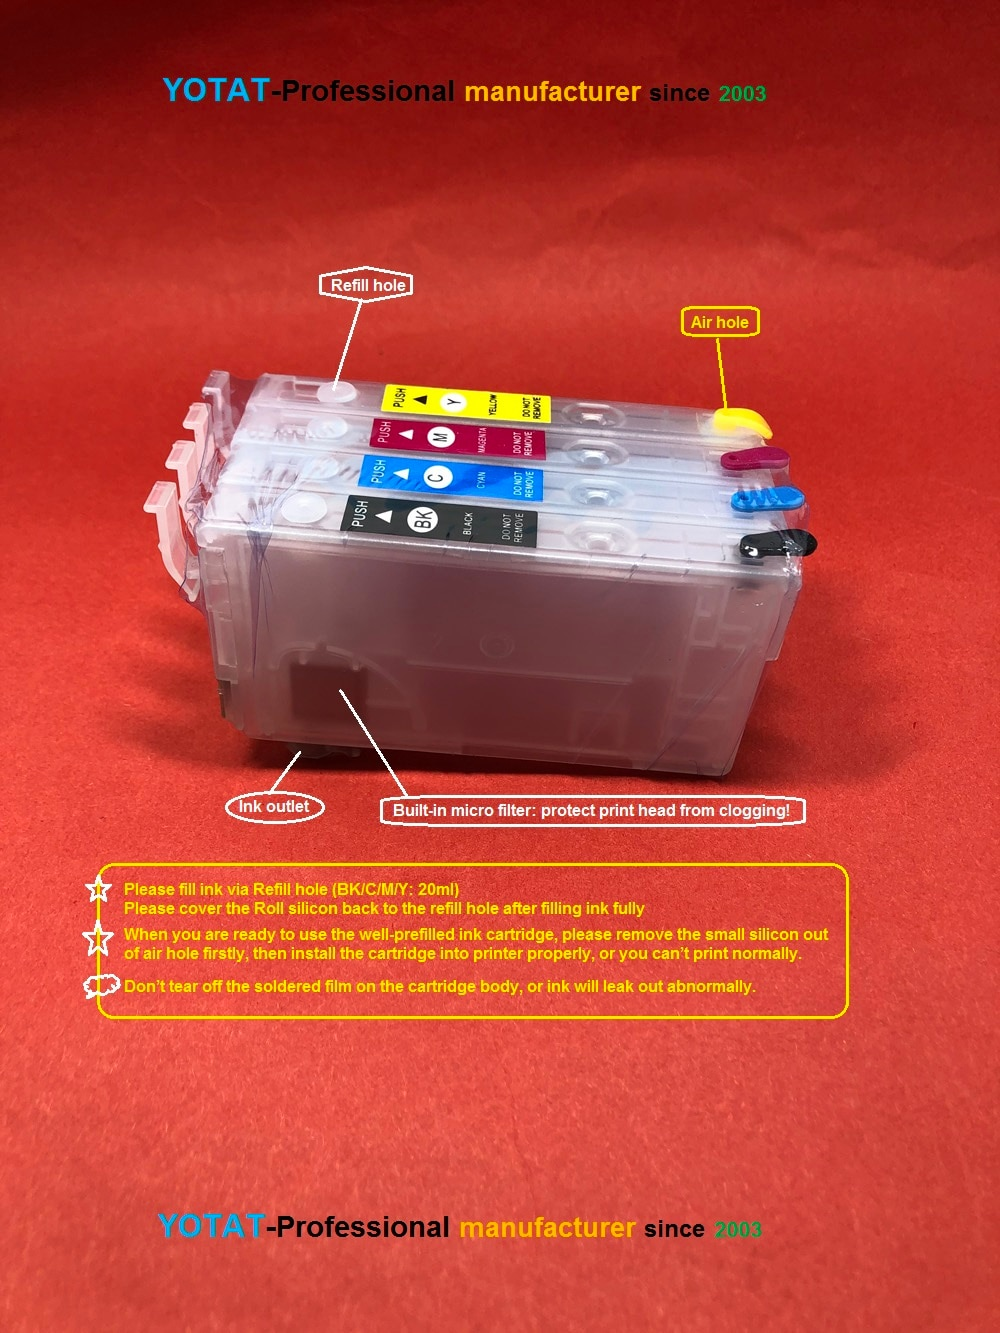 YOTAT Refillable 405 T405XL Ink Cartridge for Epson Workforce WF-3820 /WF-4820/WF-4830/WF-7830/WF-7835/WF-7840